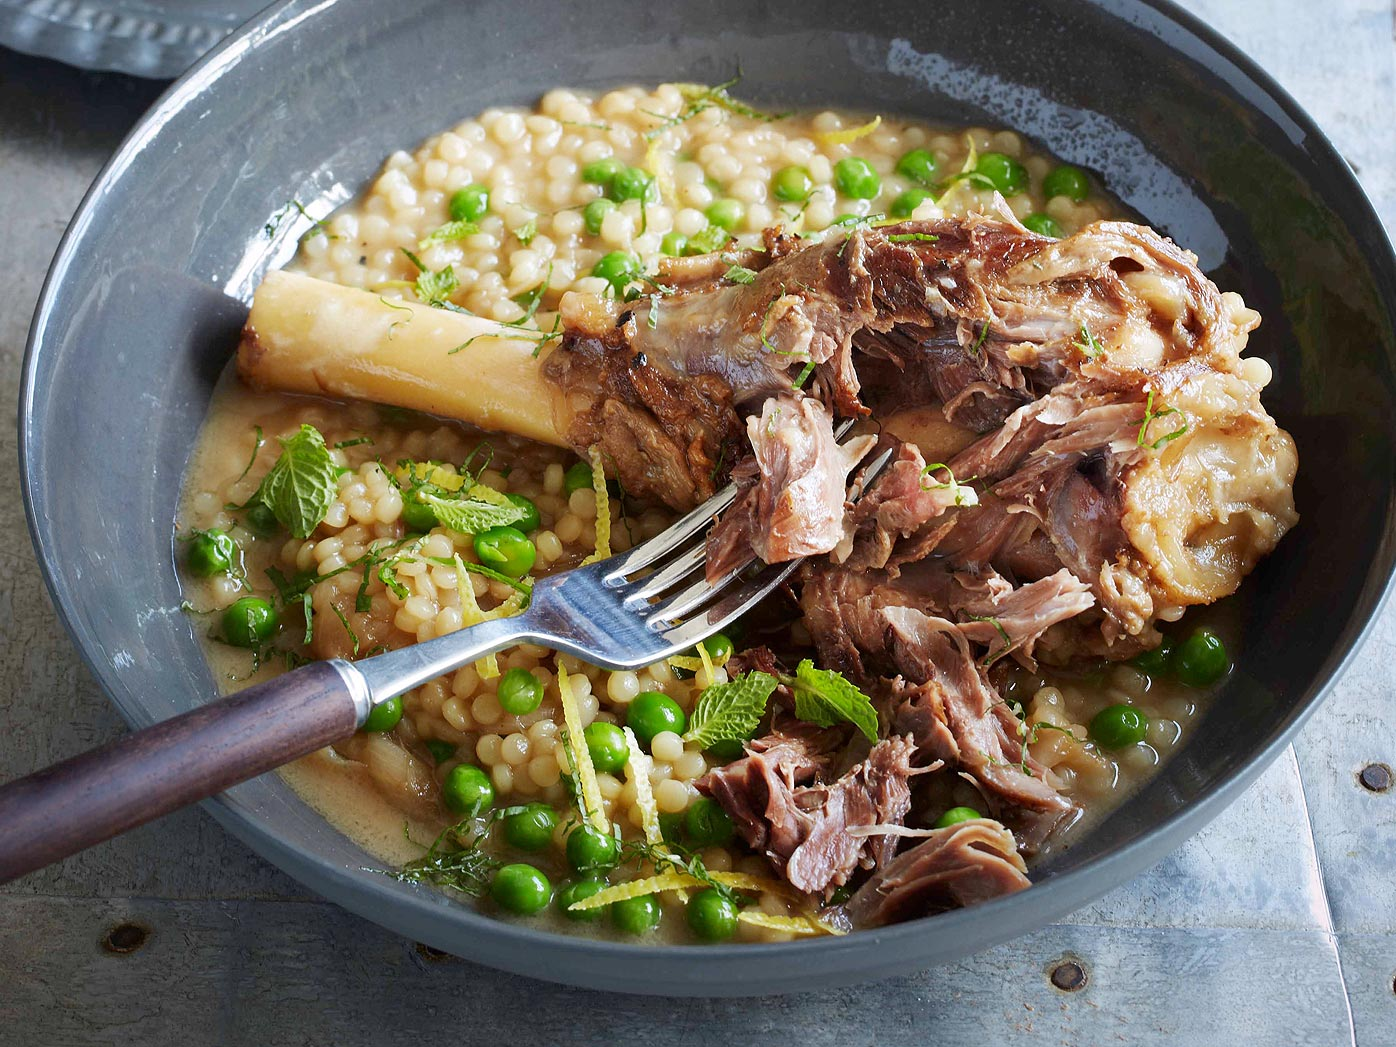 Braised lamb shanks with cous cous